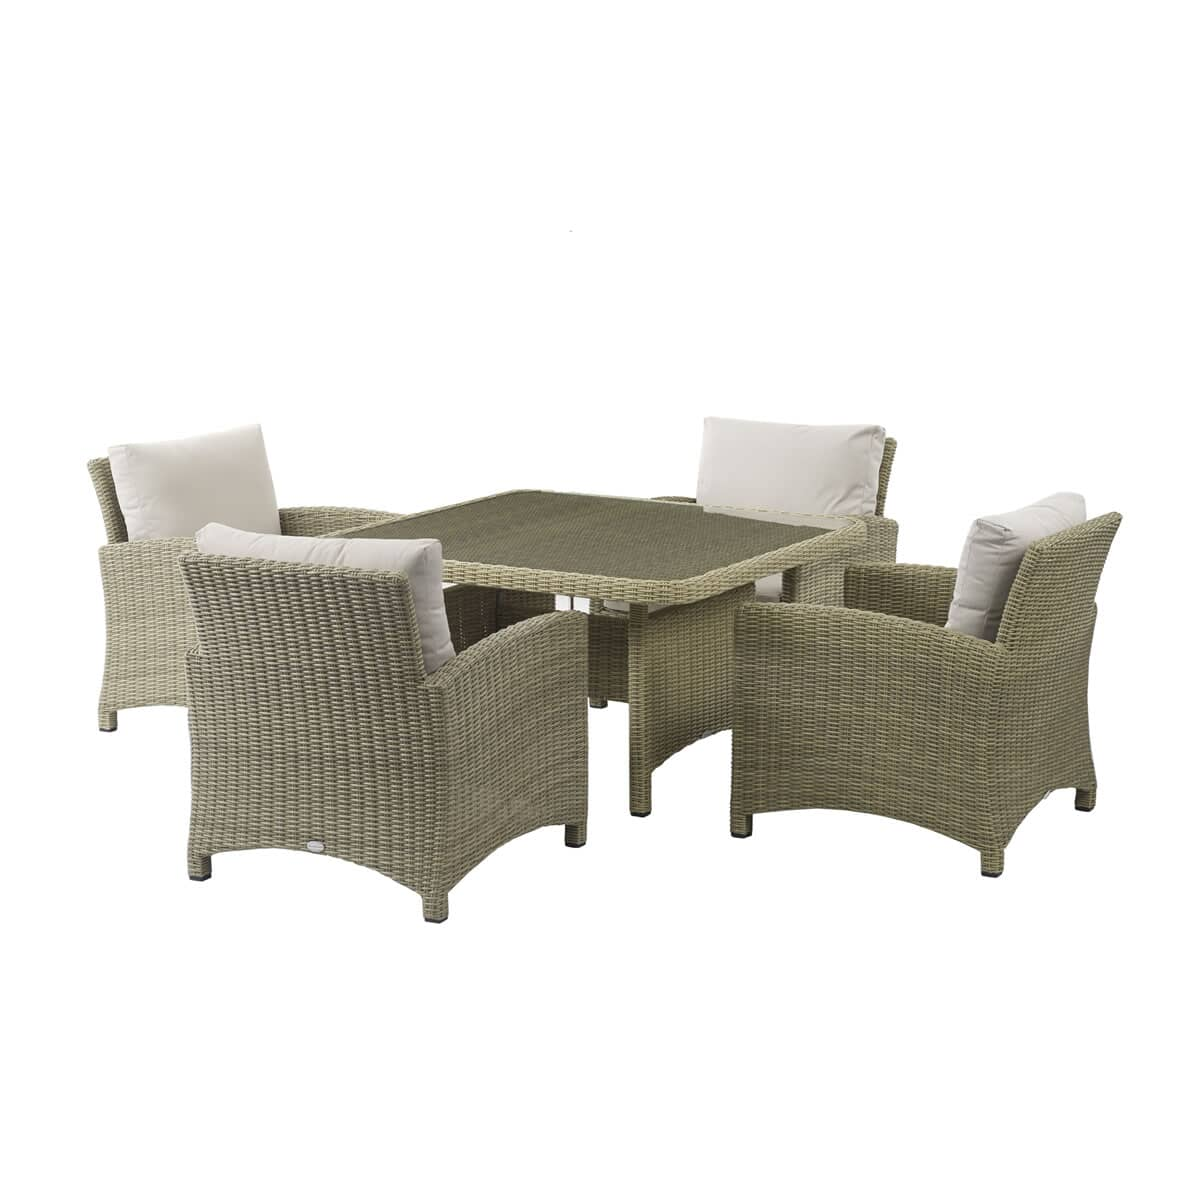 Bramblecrest Cotswold Square Casual Dining Table With 4